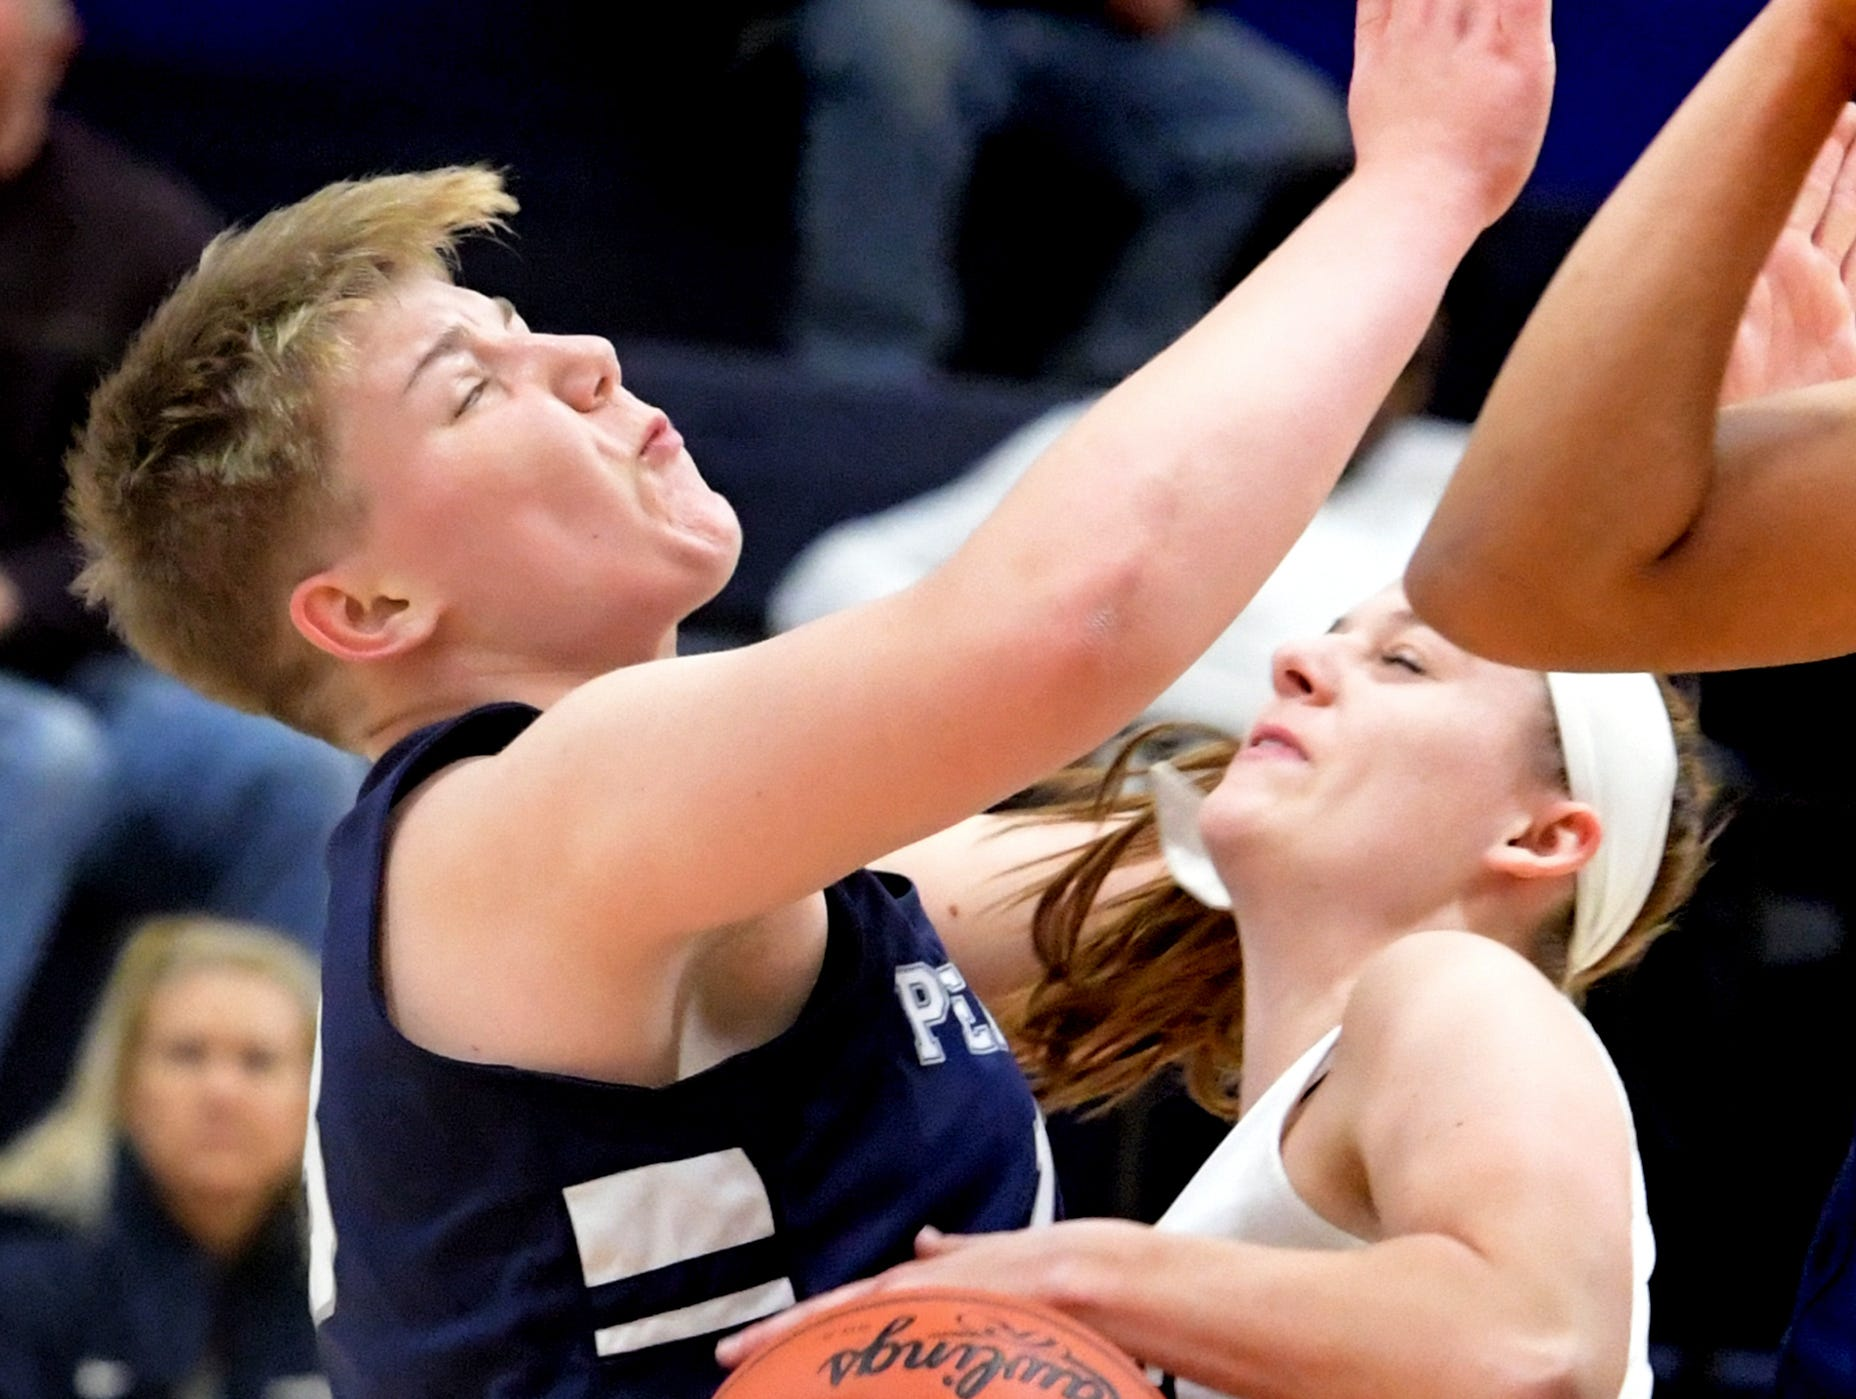 Penn State York's Janelle Kress is called for the charge on Penn State Wilkes-Barre's Victoria Benning during action in York Tuesday, Nov. 27, 2018. Bill Kalina photo